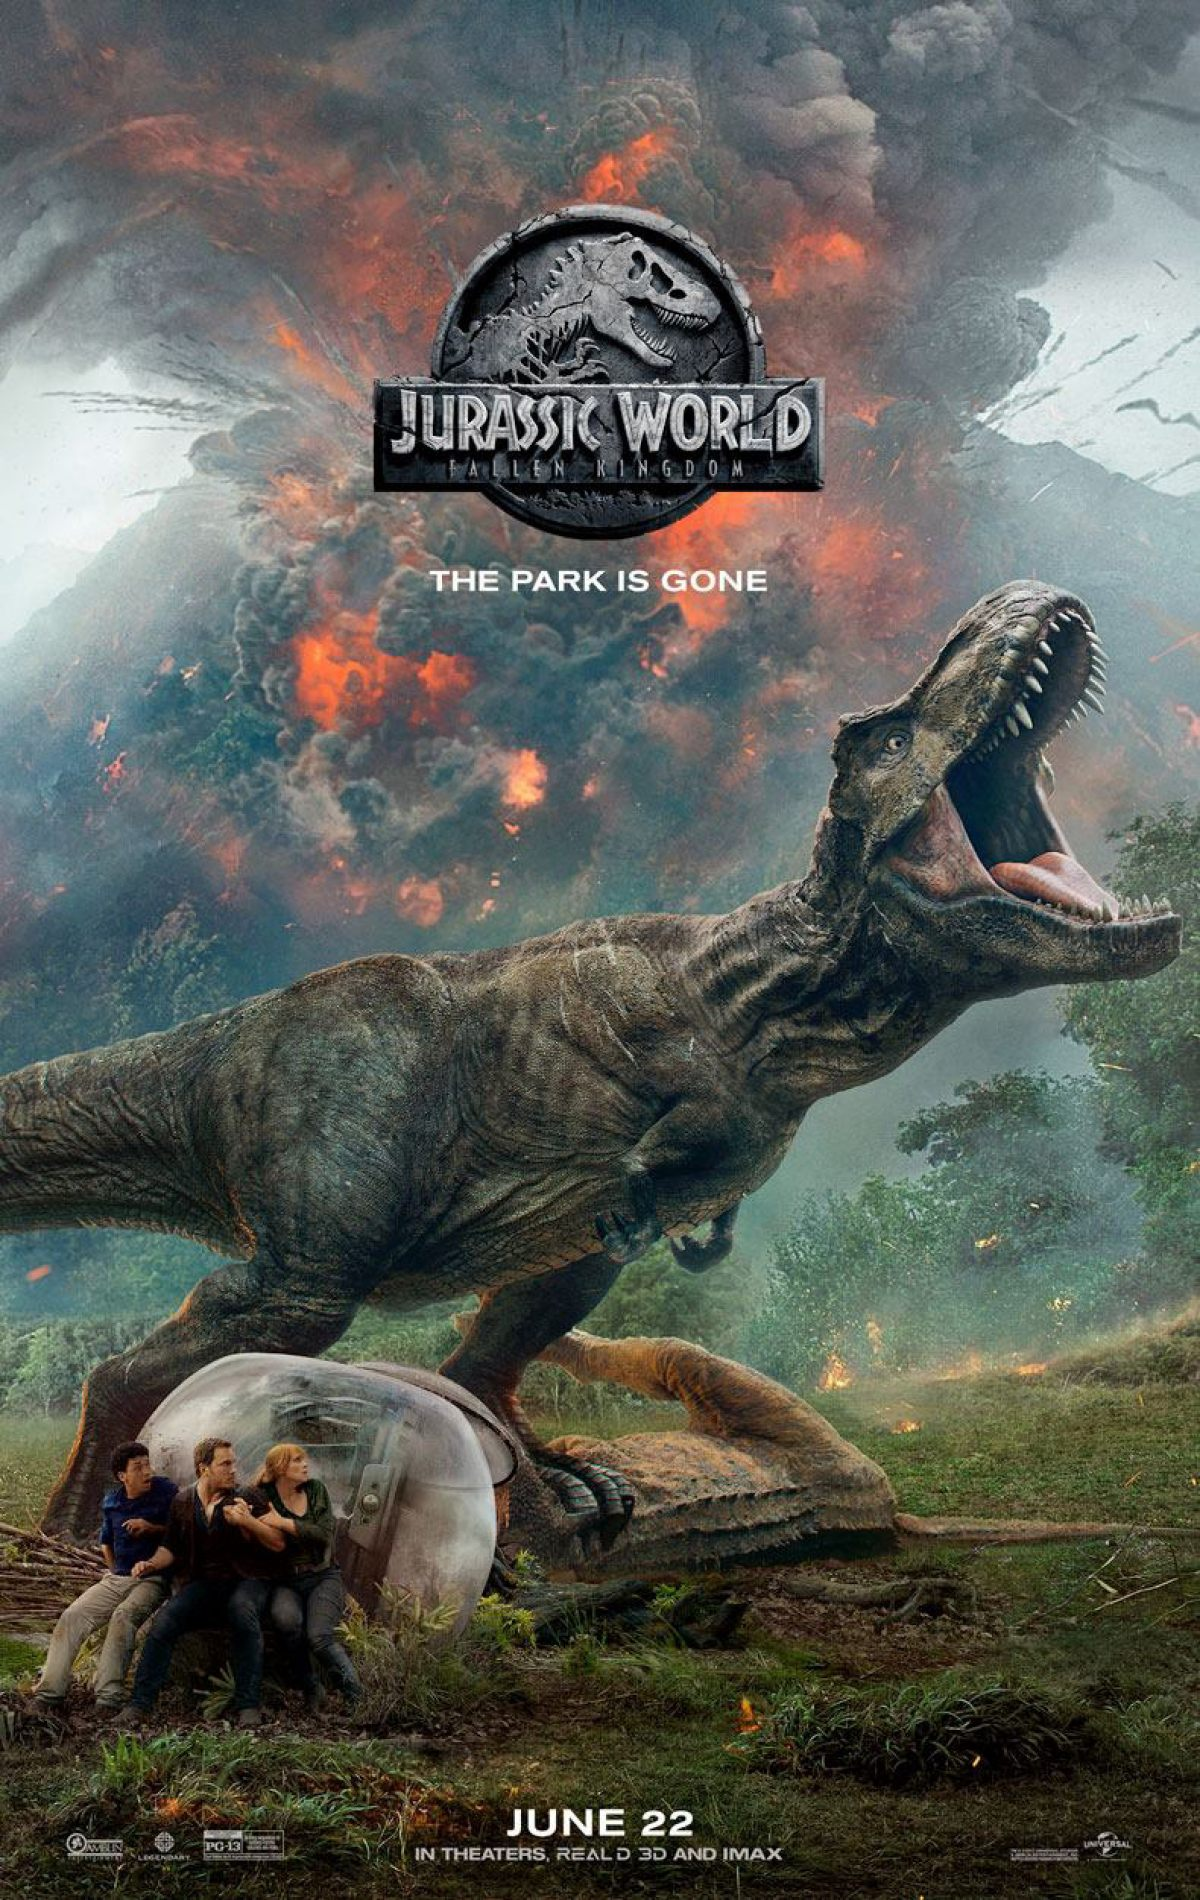 New Poster Of Jurassic World: Fallen Kingdom With Rexy